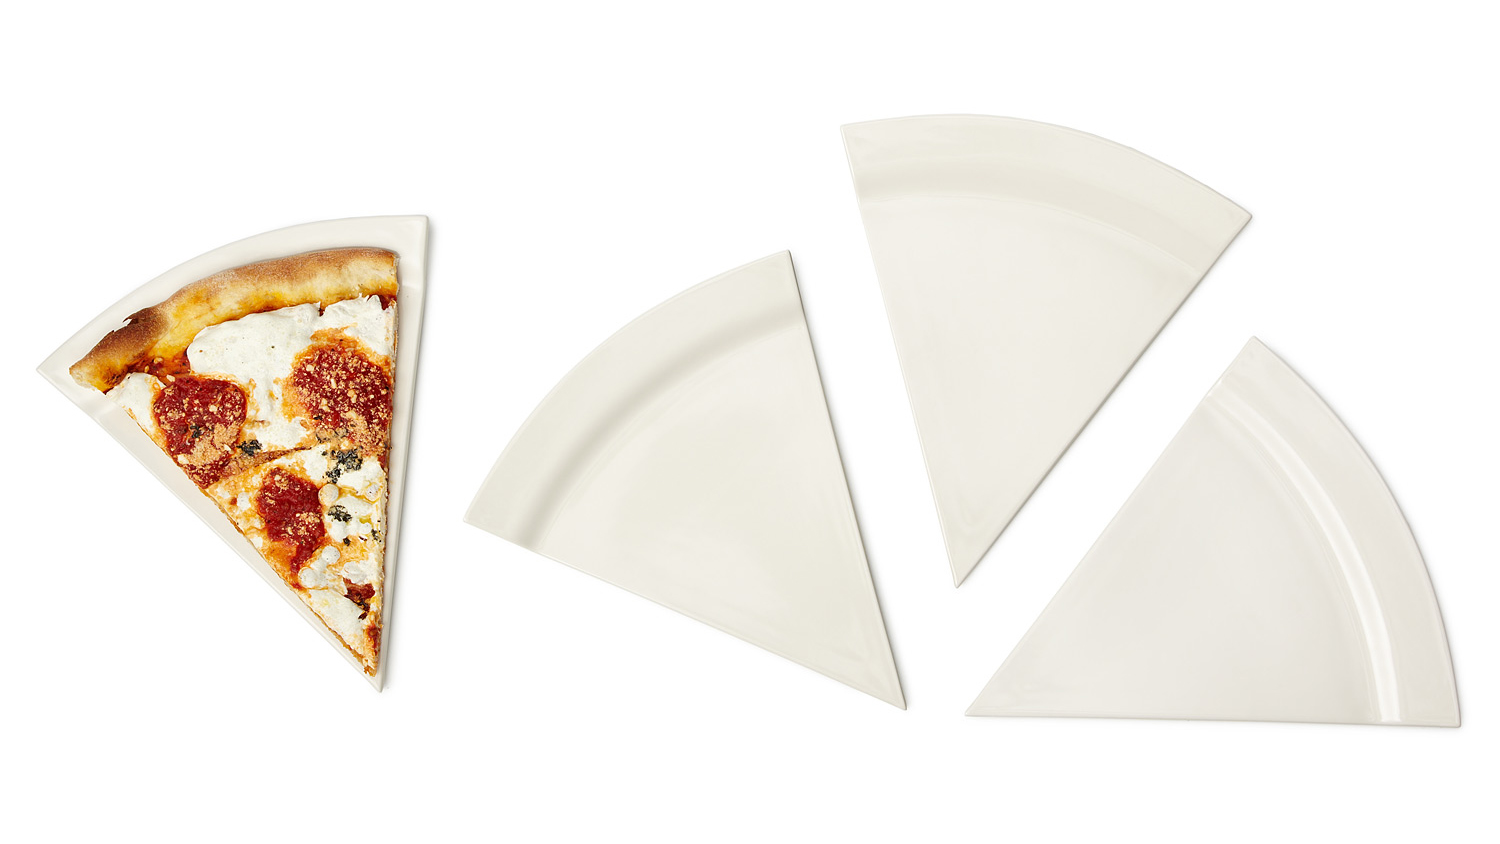 Why Waste An Entire Plate On A Single Slice Of Pizza?